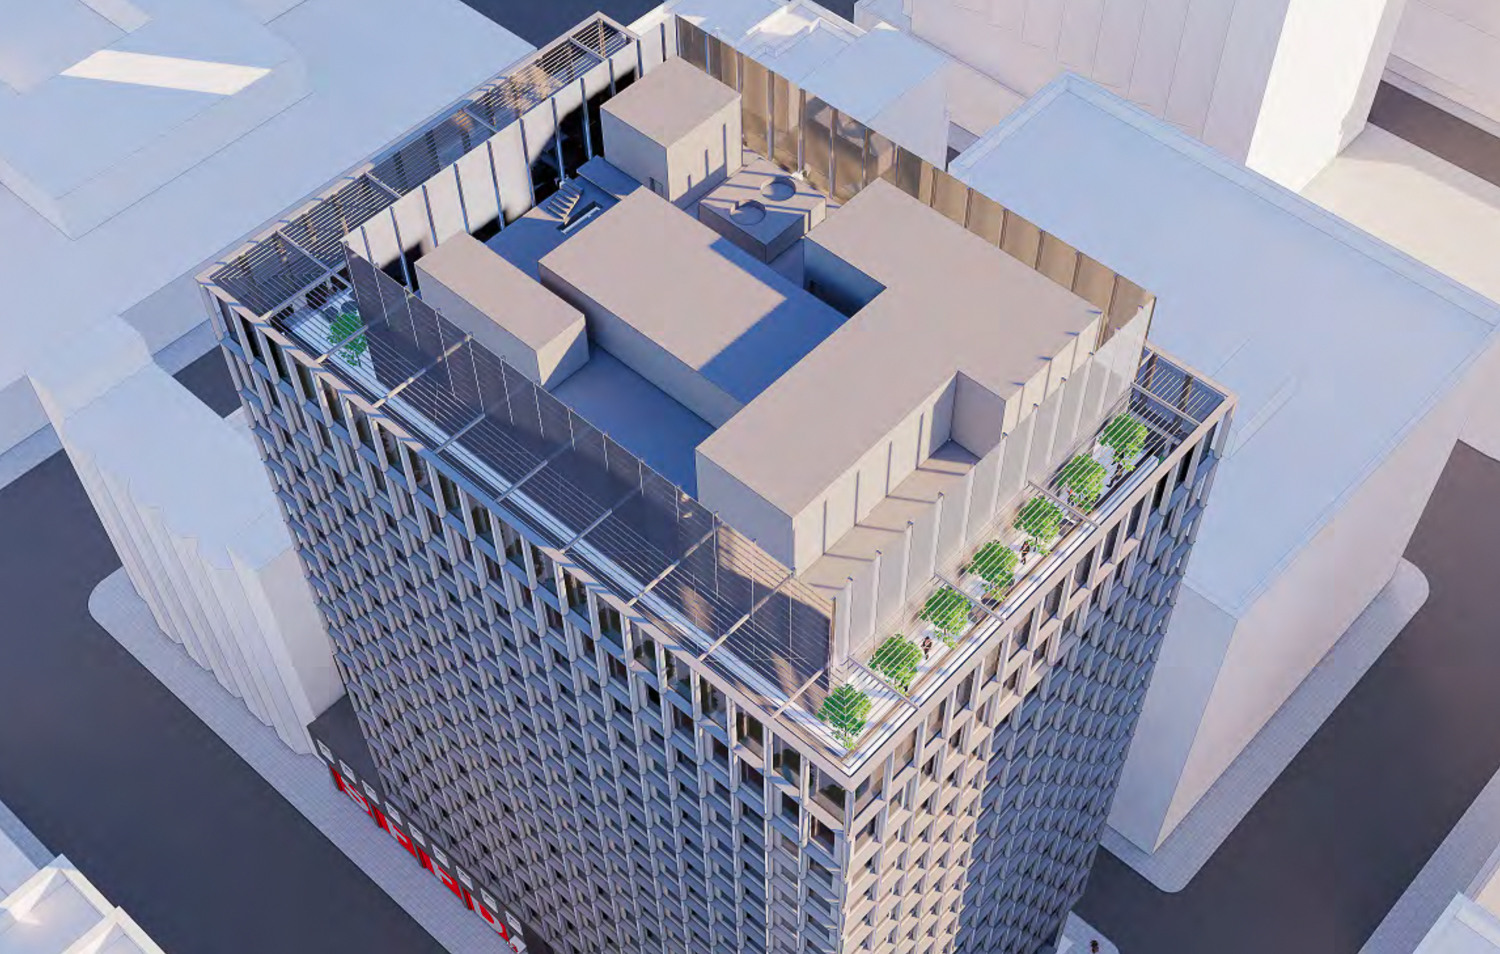 530 Sansome Street rooftop, rendering by SOM